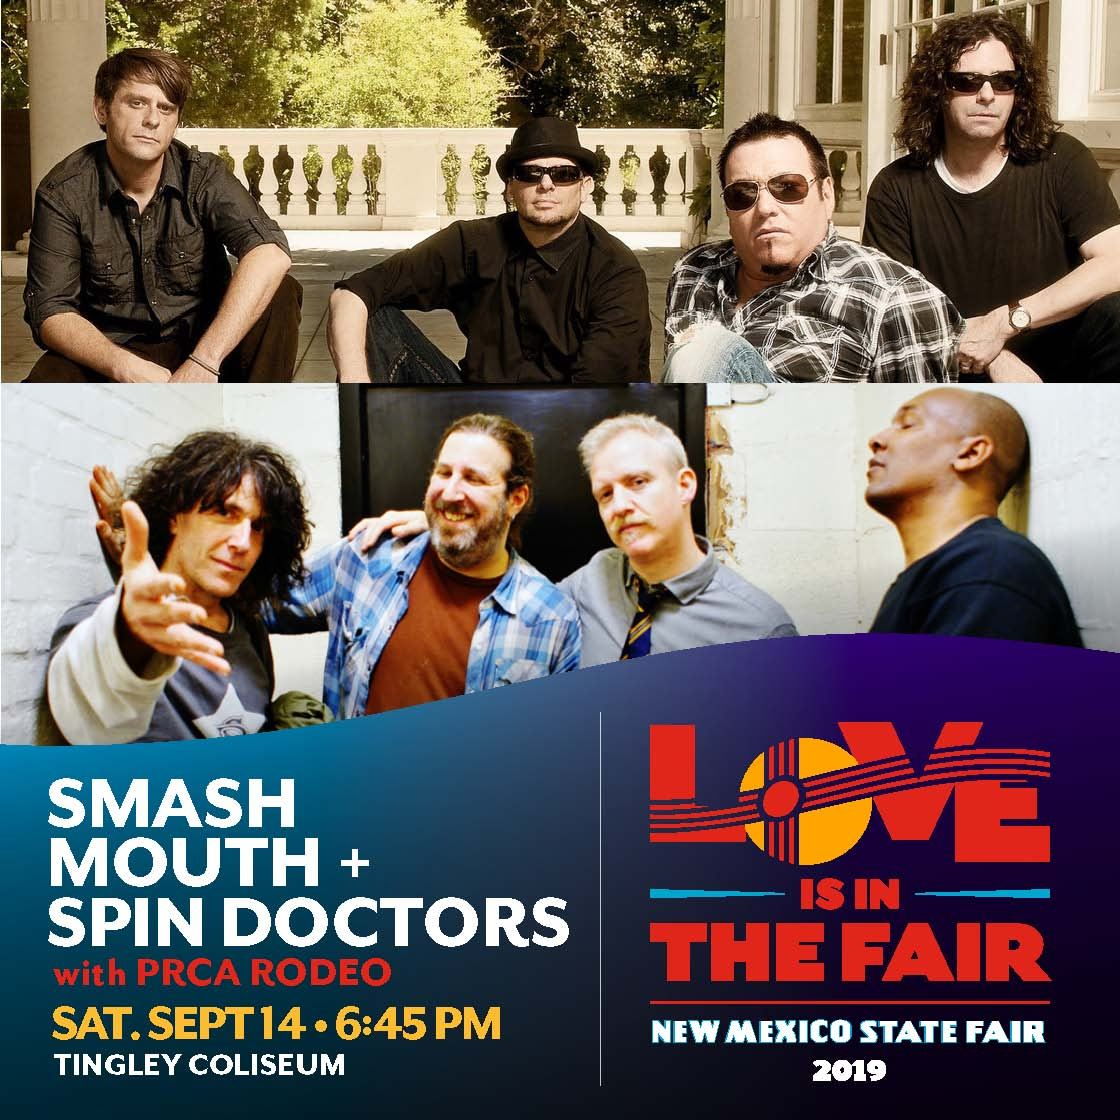 Smash Mouth + Spin Doctors with PRCA Rodeo